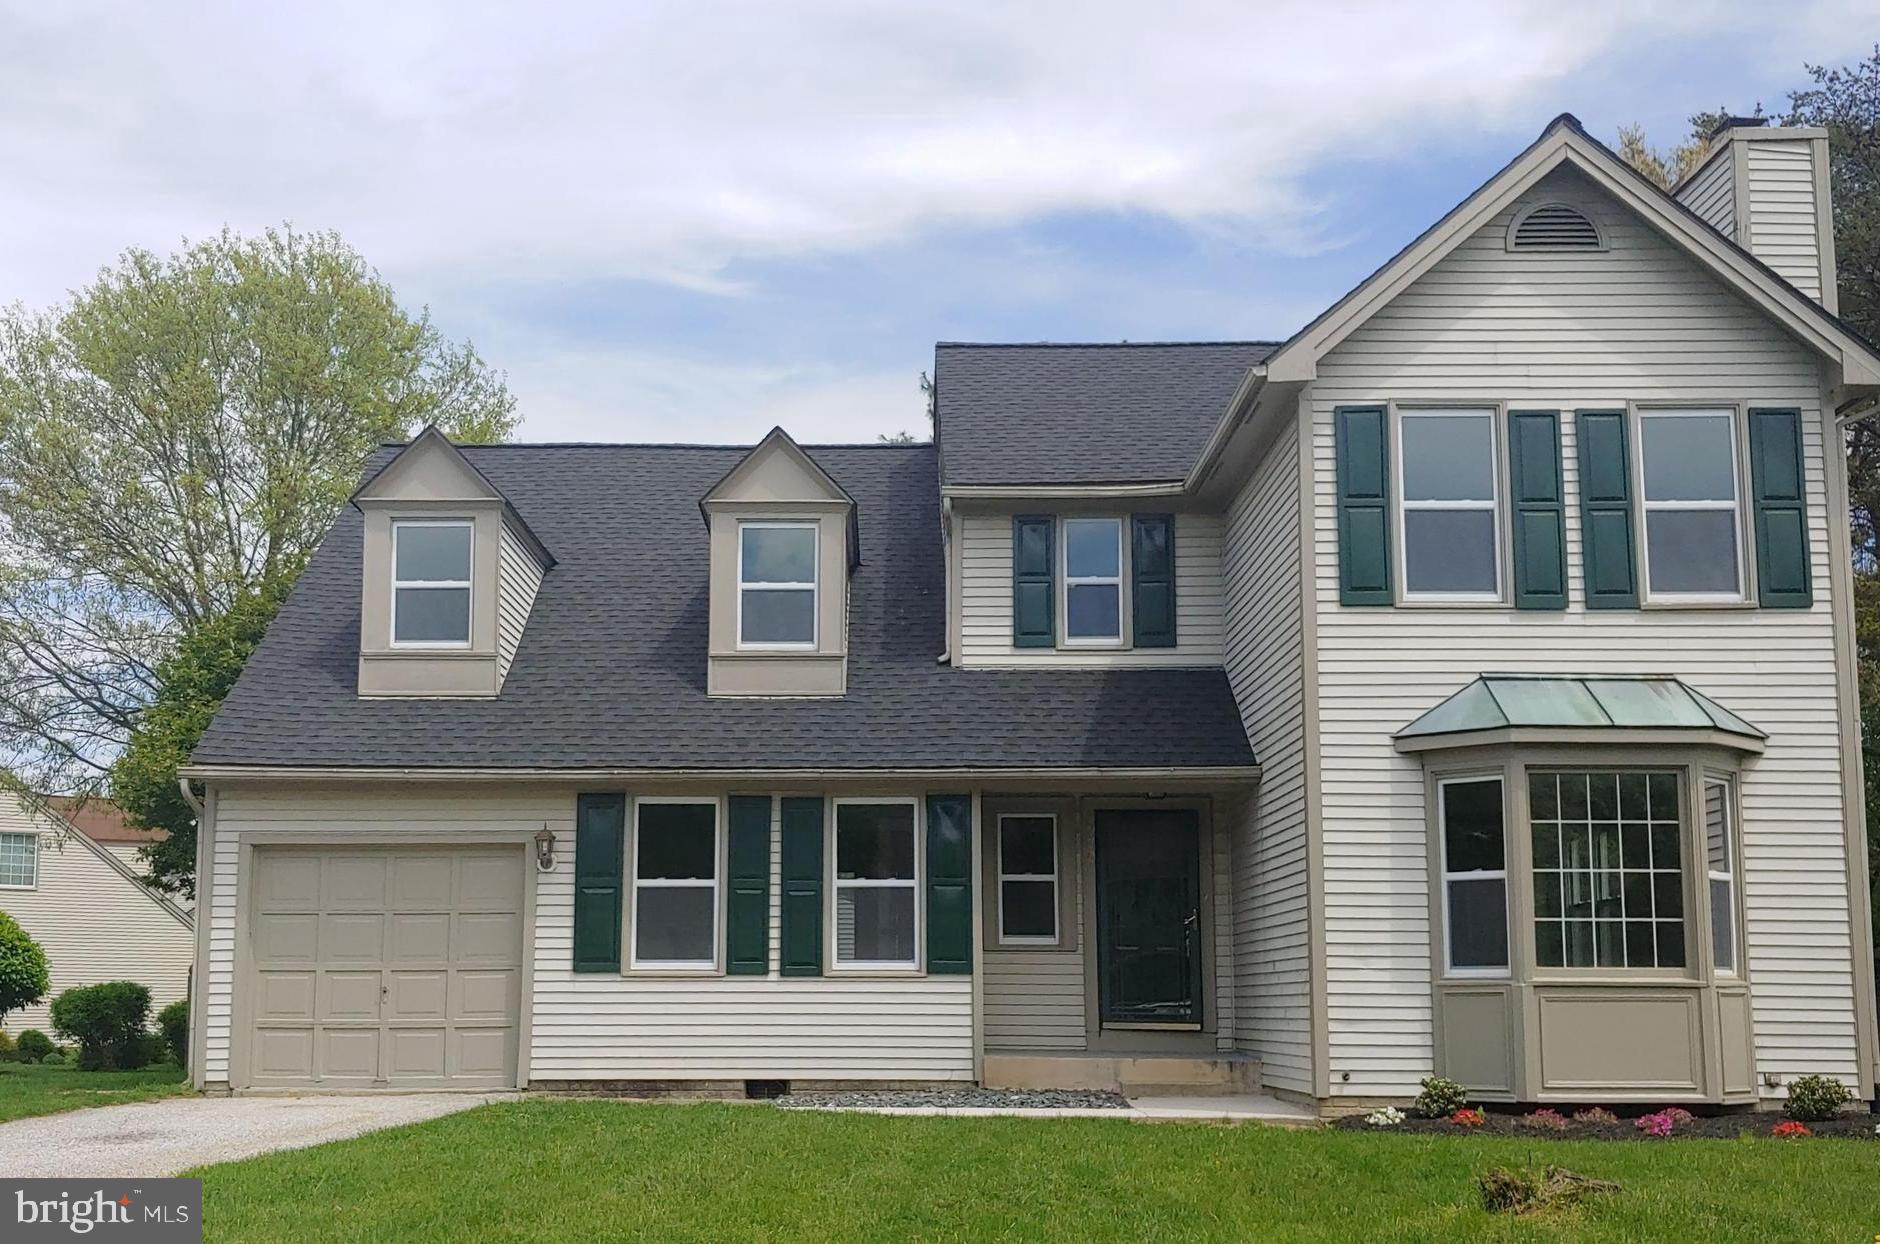 Rarely available single family home in Aspenwood!  Check out this 4 bedroom 3 1/2 bath home located